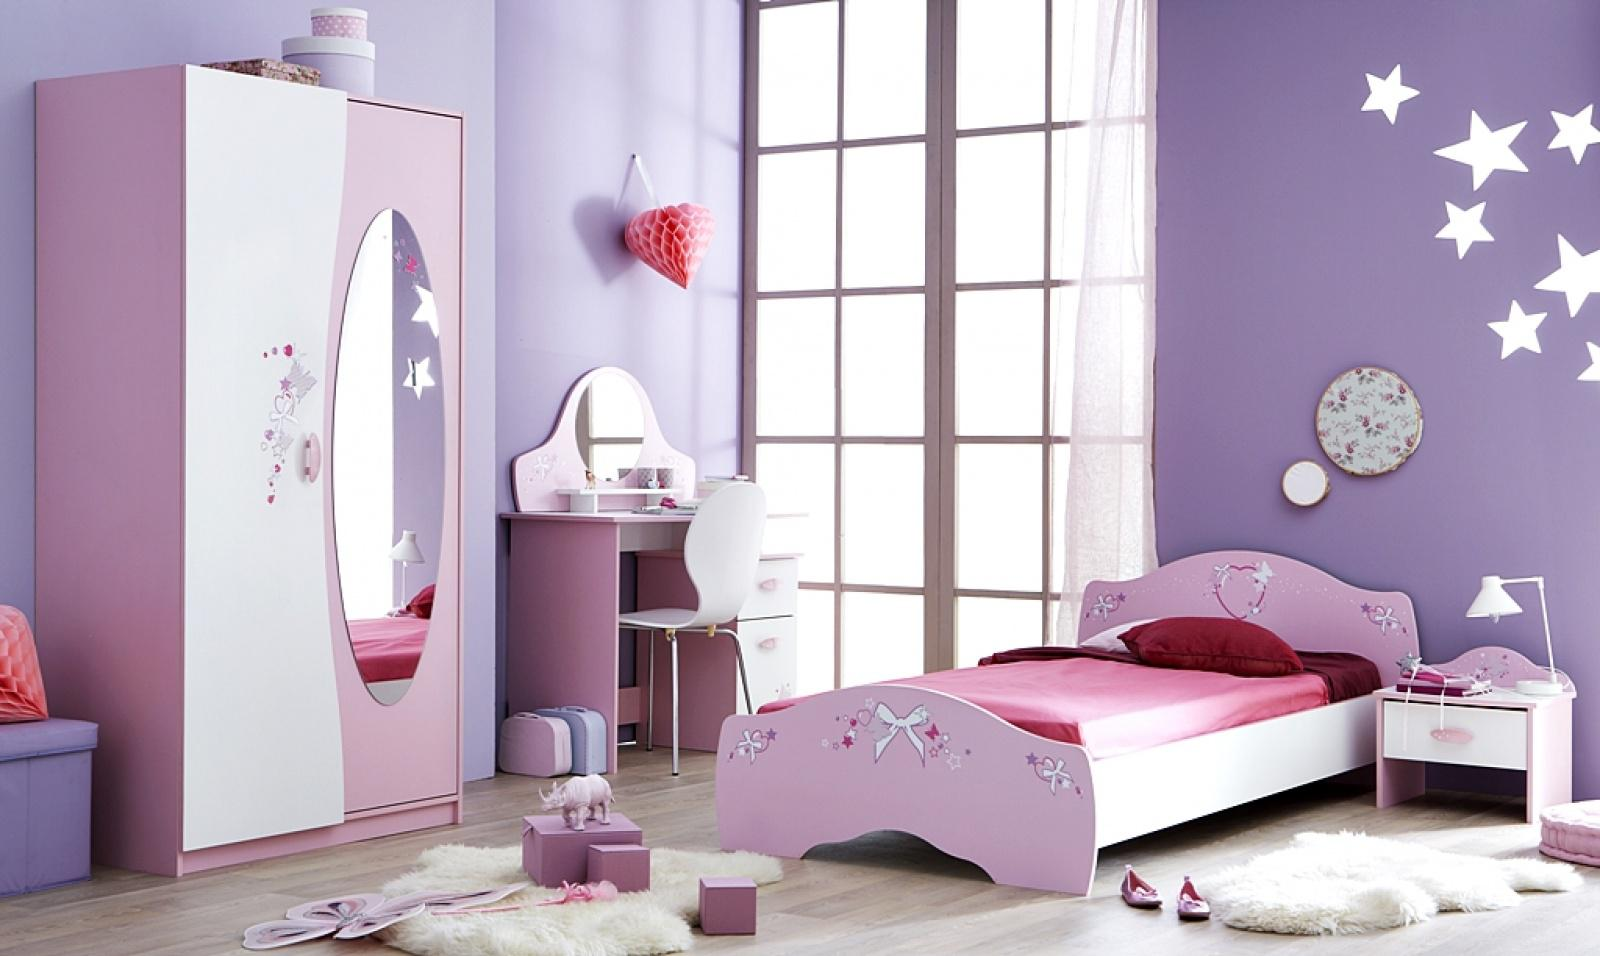 kinderzimmer magic 4 teilig in flieder wei kaufen bei m bel lux. Black Bedroom Furniture Sets. Home Design Ideas